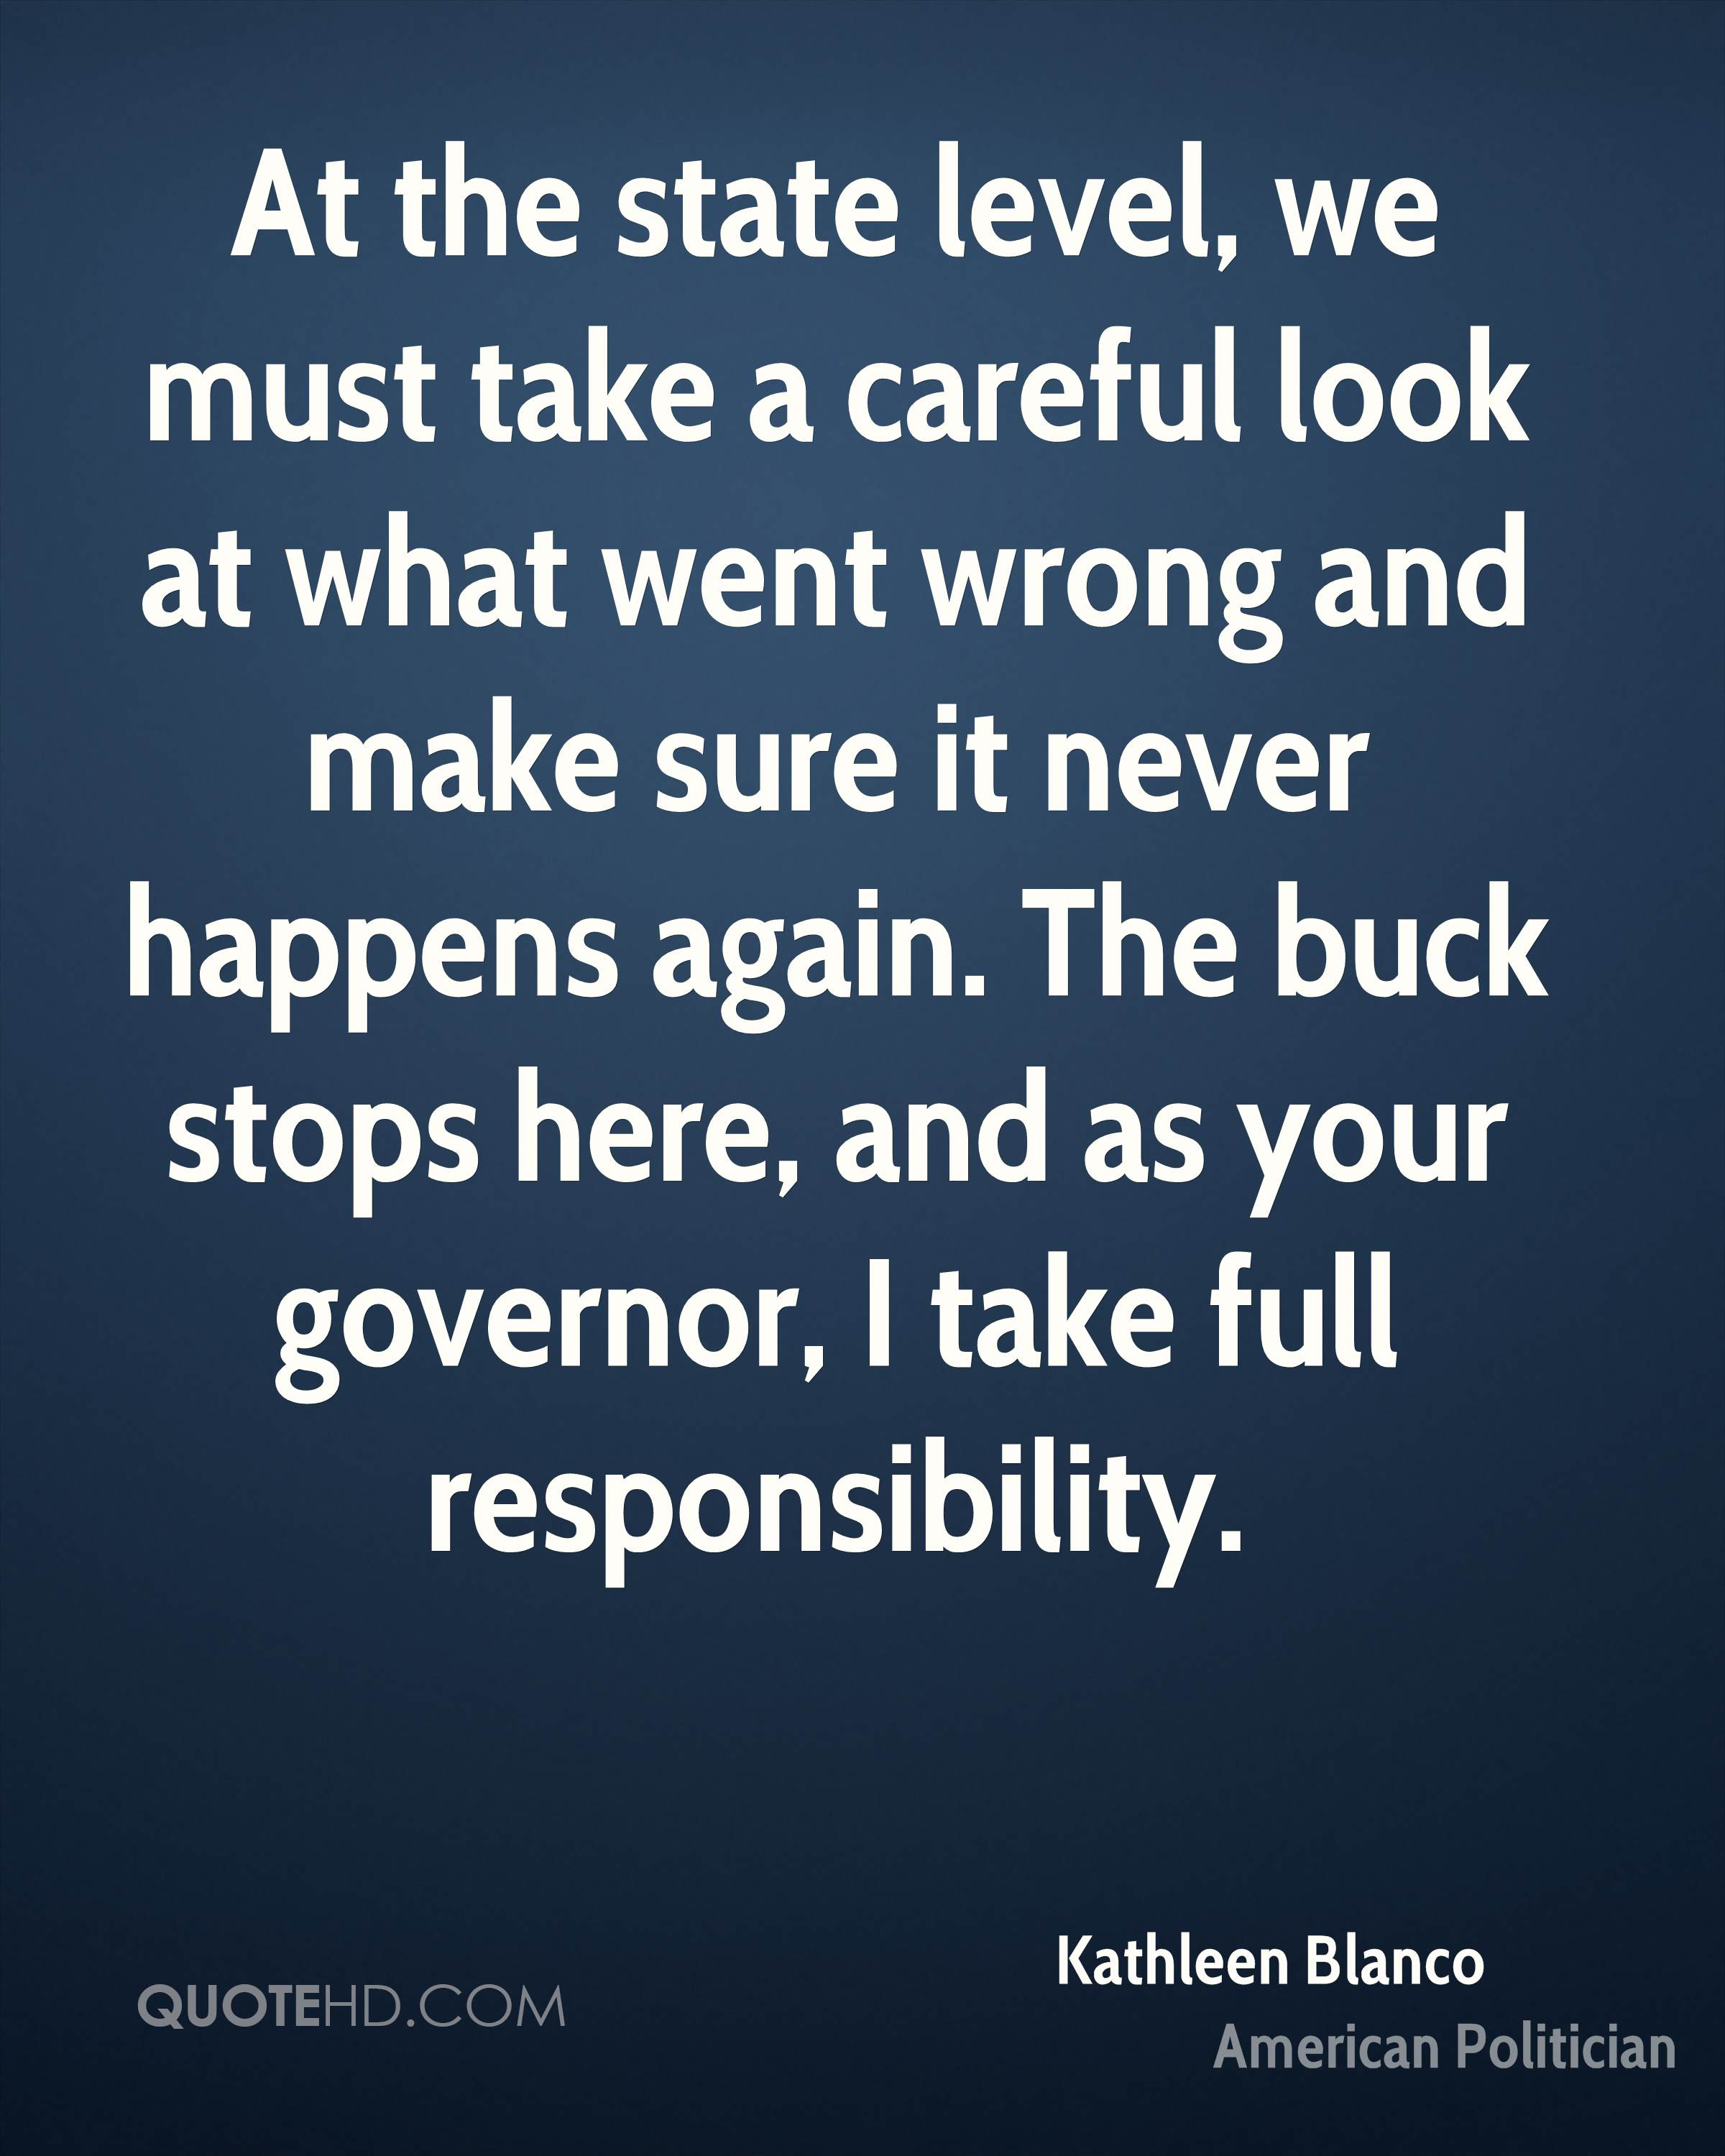 At the state level, we must take a careful look at what went wrong and make sure it never happens again. The buck stops here, and as your governor, I take full responsibility.